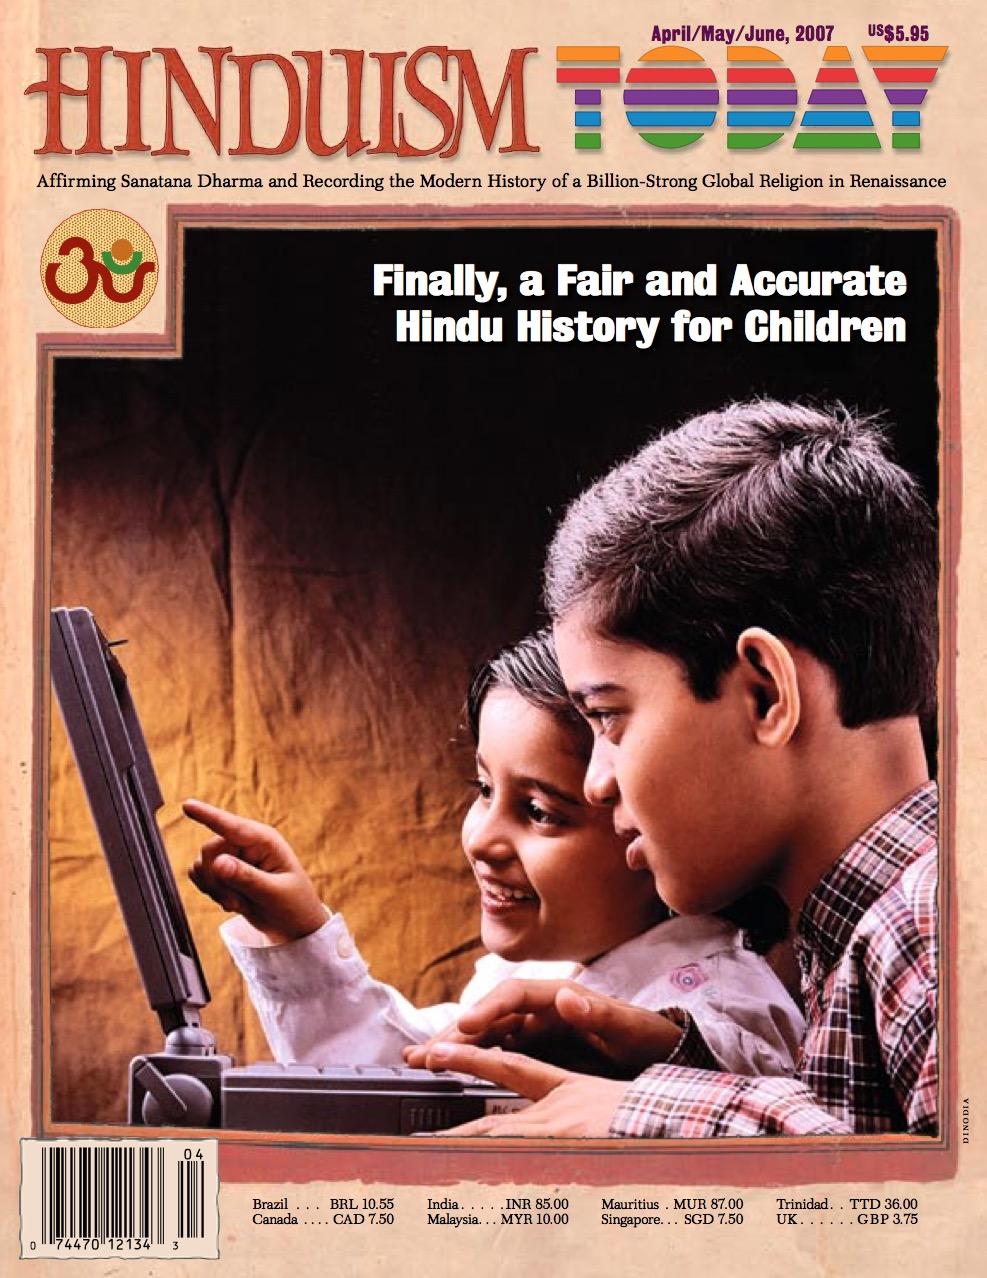 Hinduism Today Apr/May/June 2007